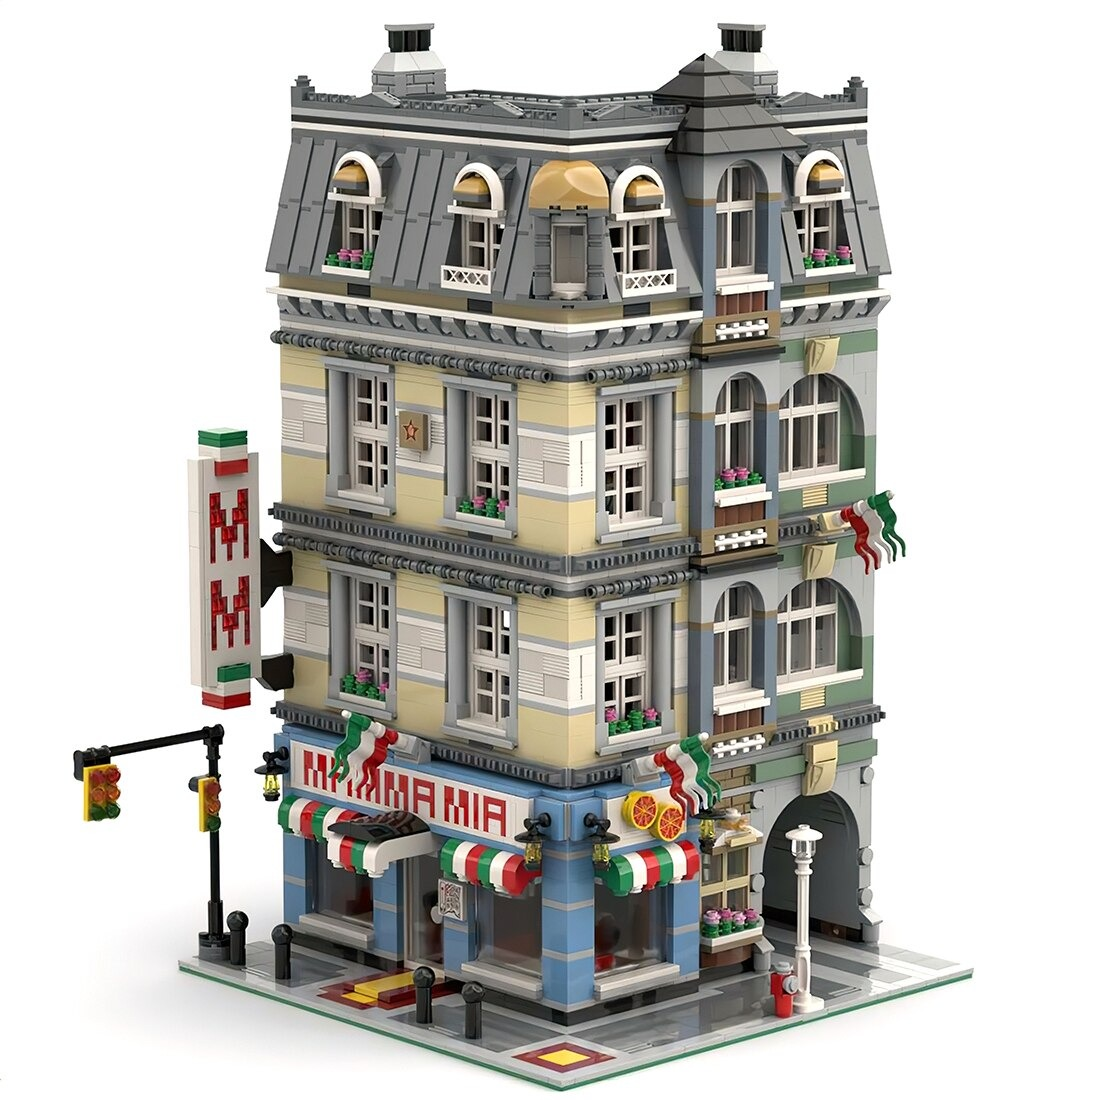 Mamma Mia Pizzeria M1 MODULAR BUILDING MOC-39491 by Magdatoys WITH 4449 PIECES